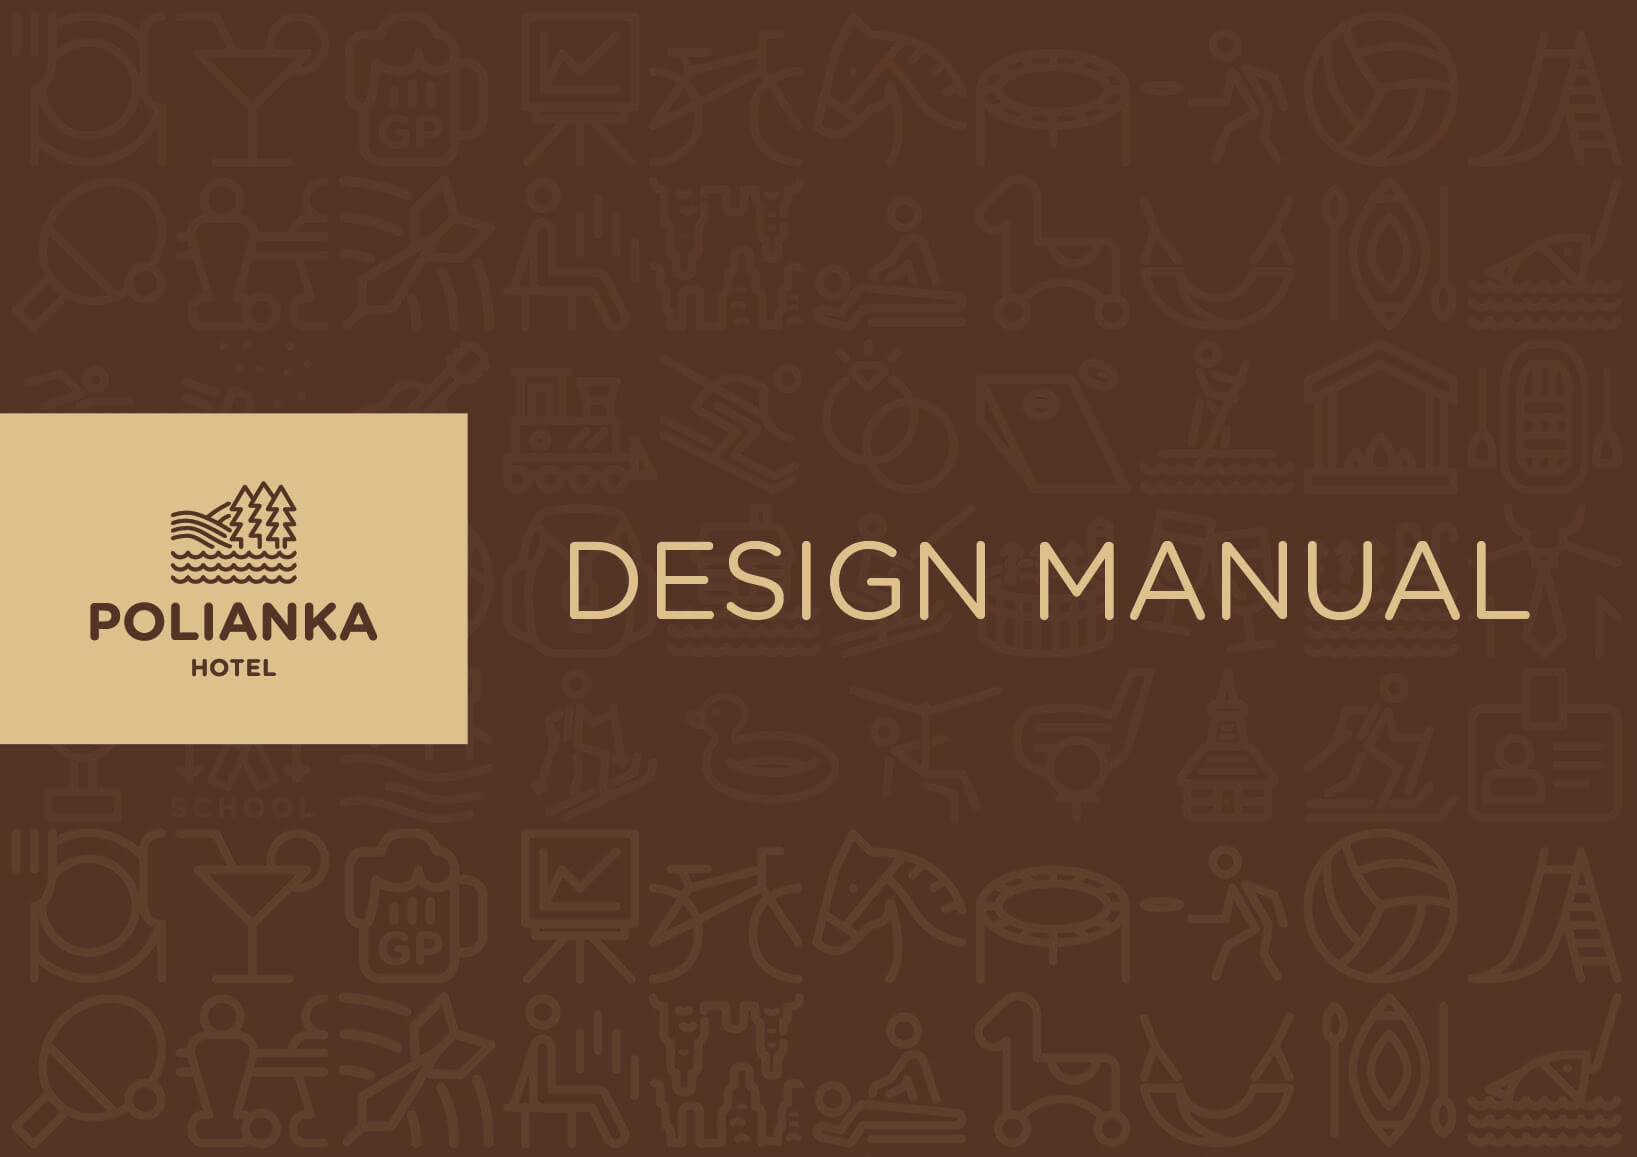 polianka-CI-design-manual-v031